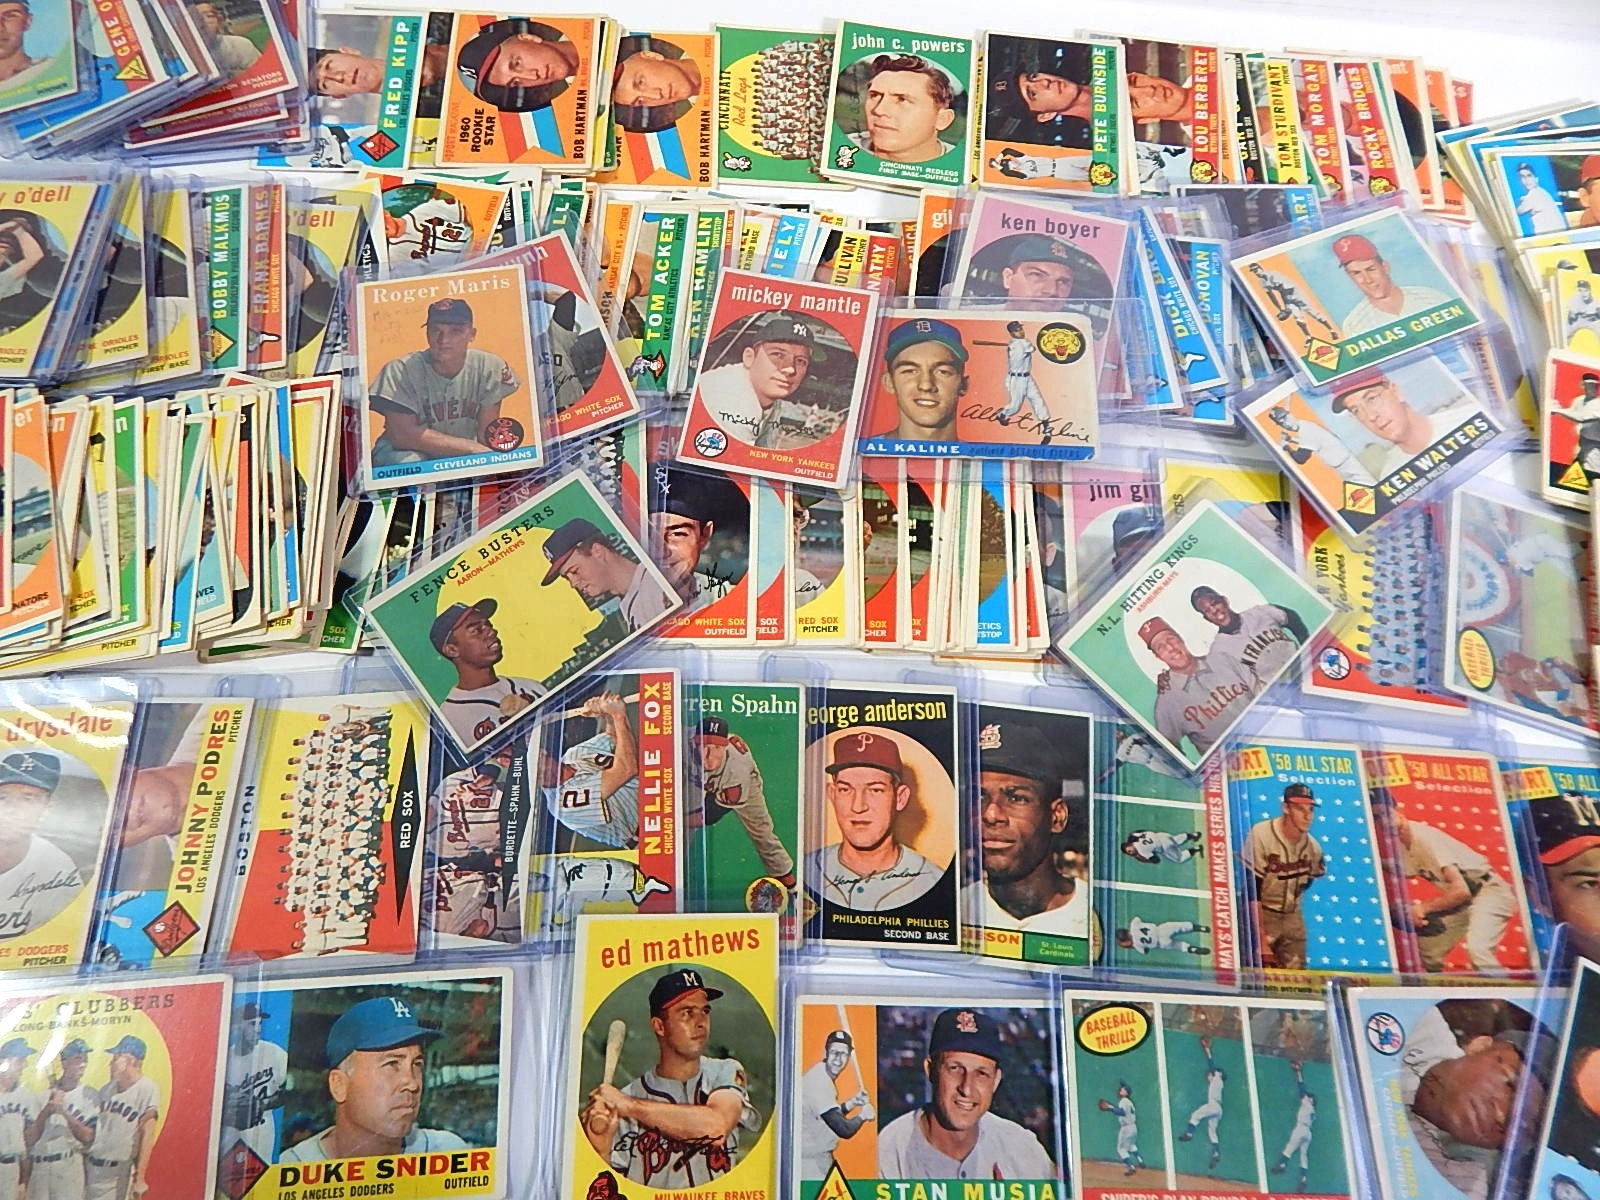 Large Vintage Topps Baseball Card Collection 1955 to 1961 with 1959 Mantle #10